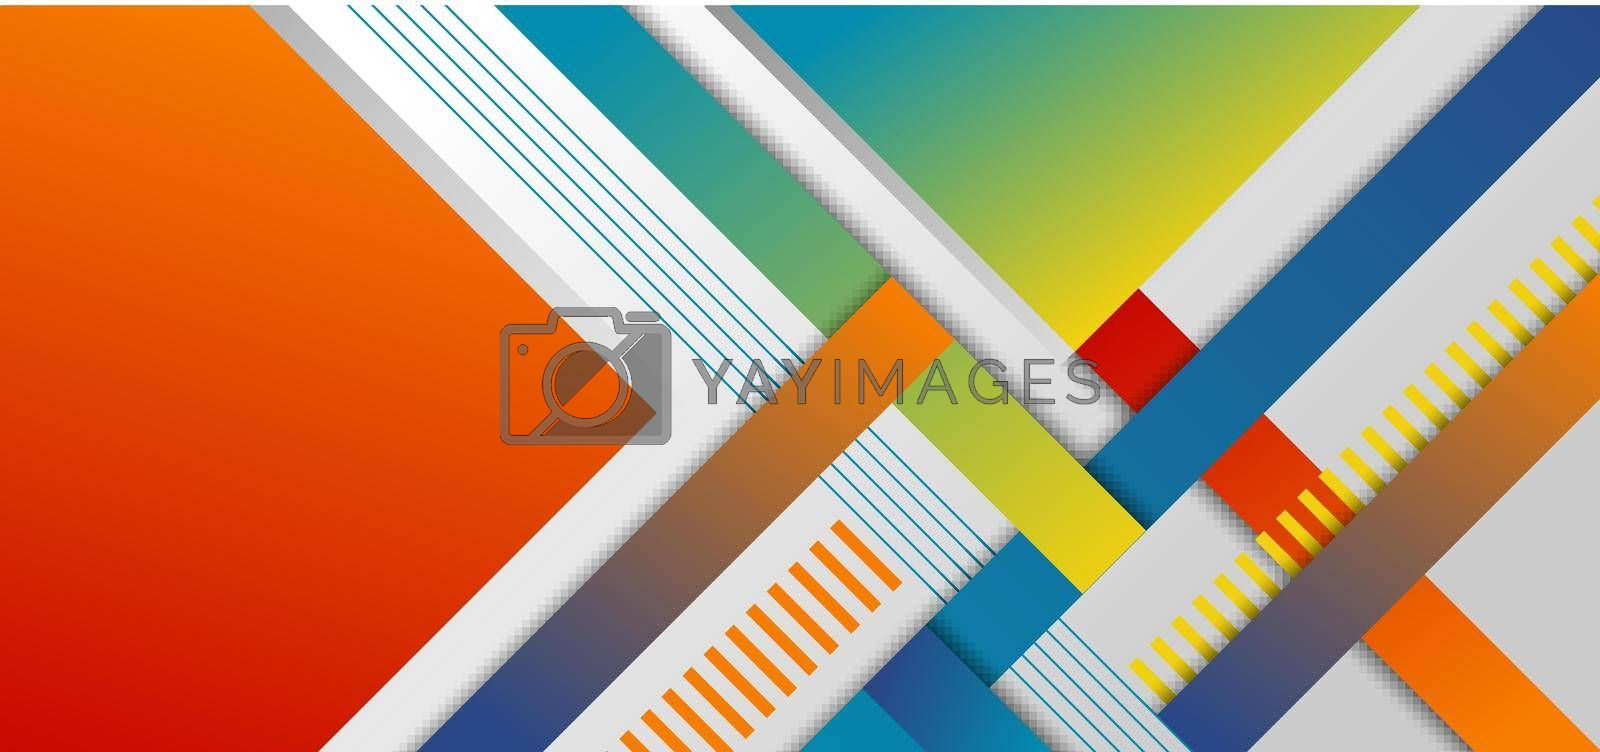 Royalty free image of Abstract headline banner template geometric and stripes pattern bright color on white background by phochi